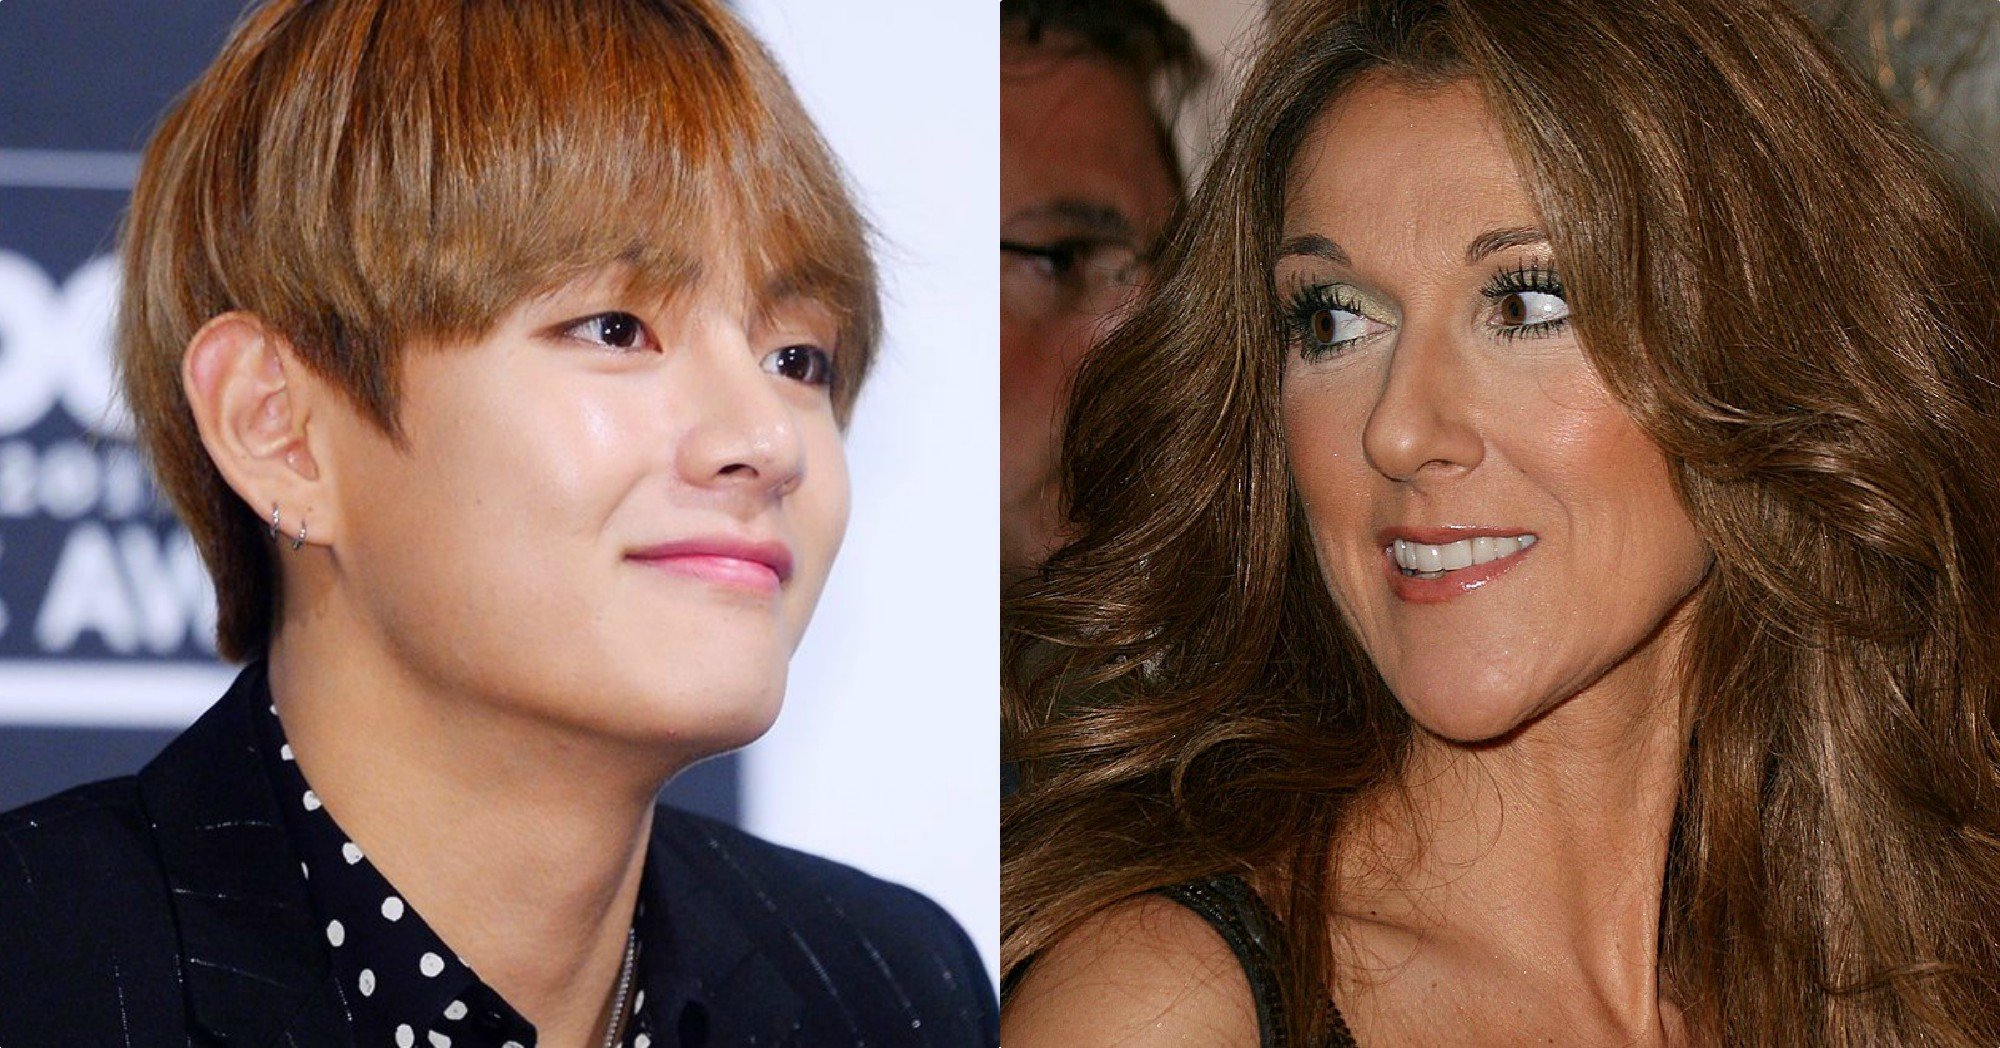 Celine Dion Personally Invited BTS To Attend Her Concert